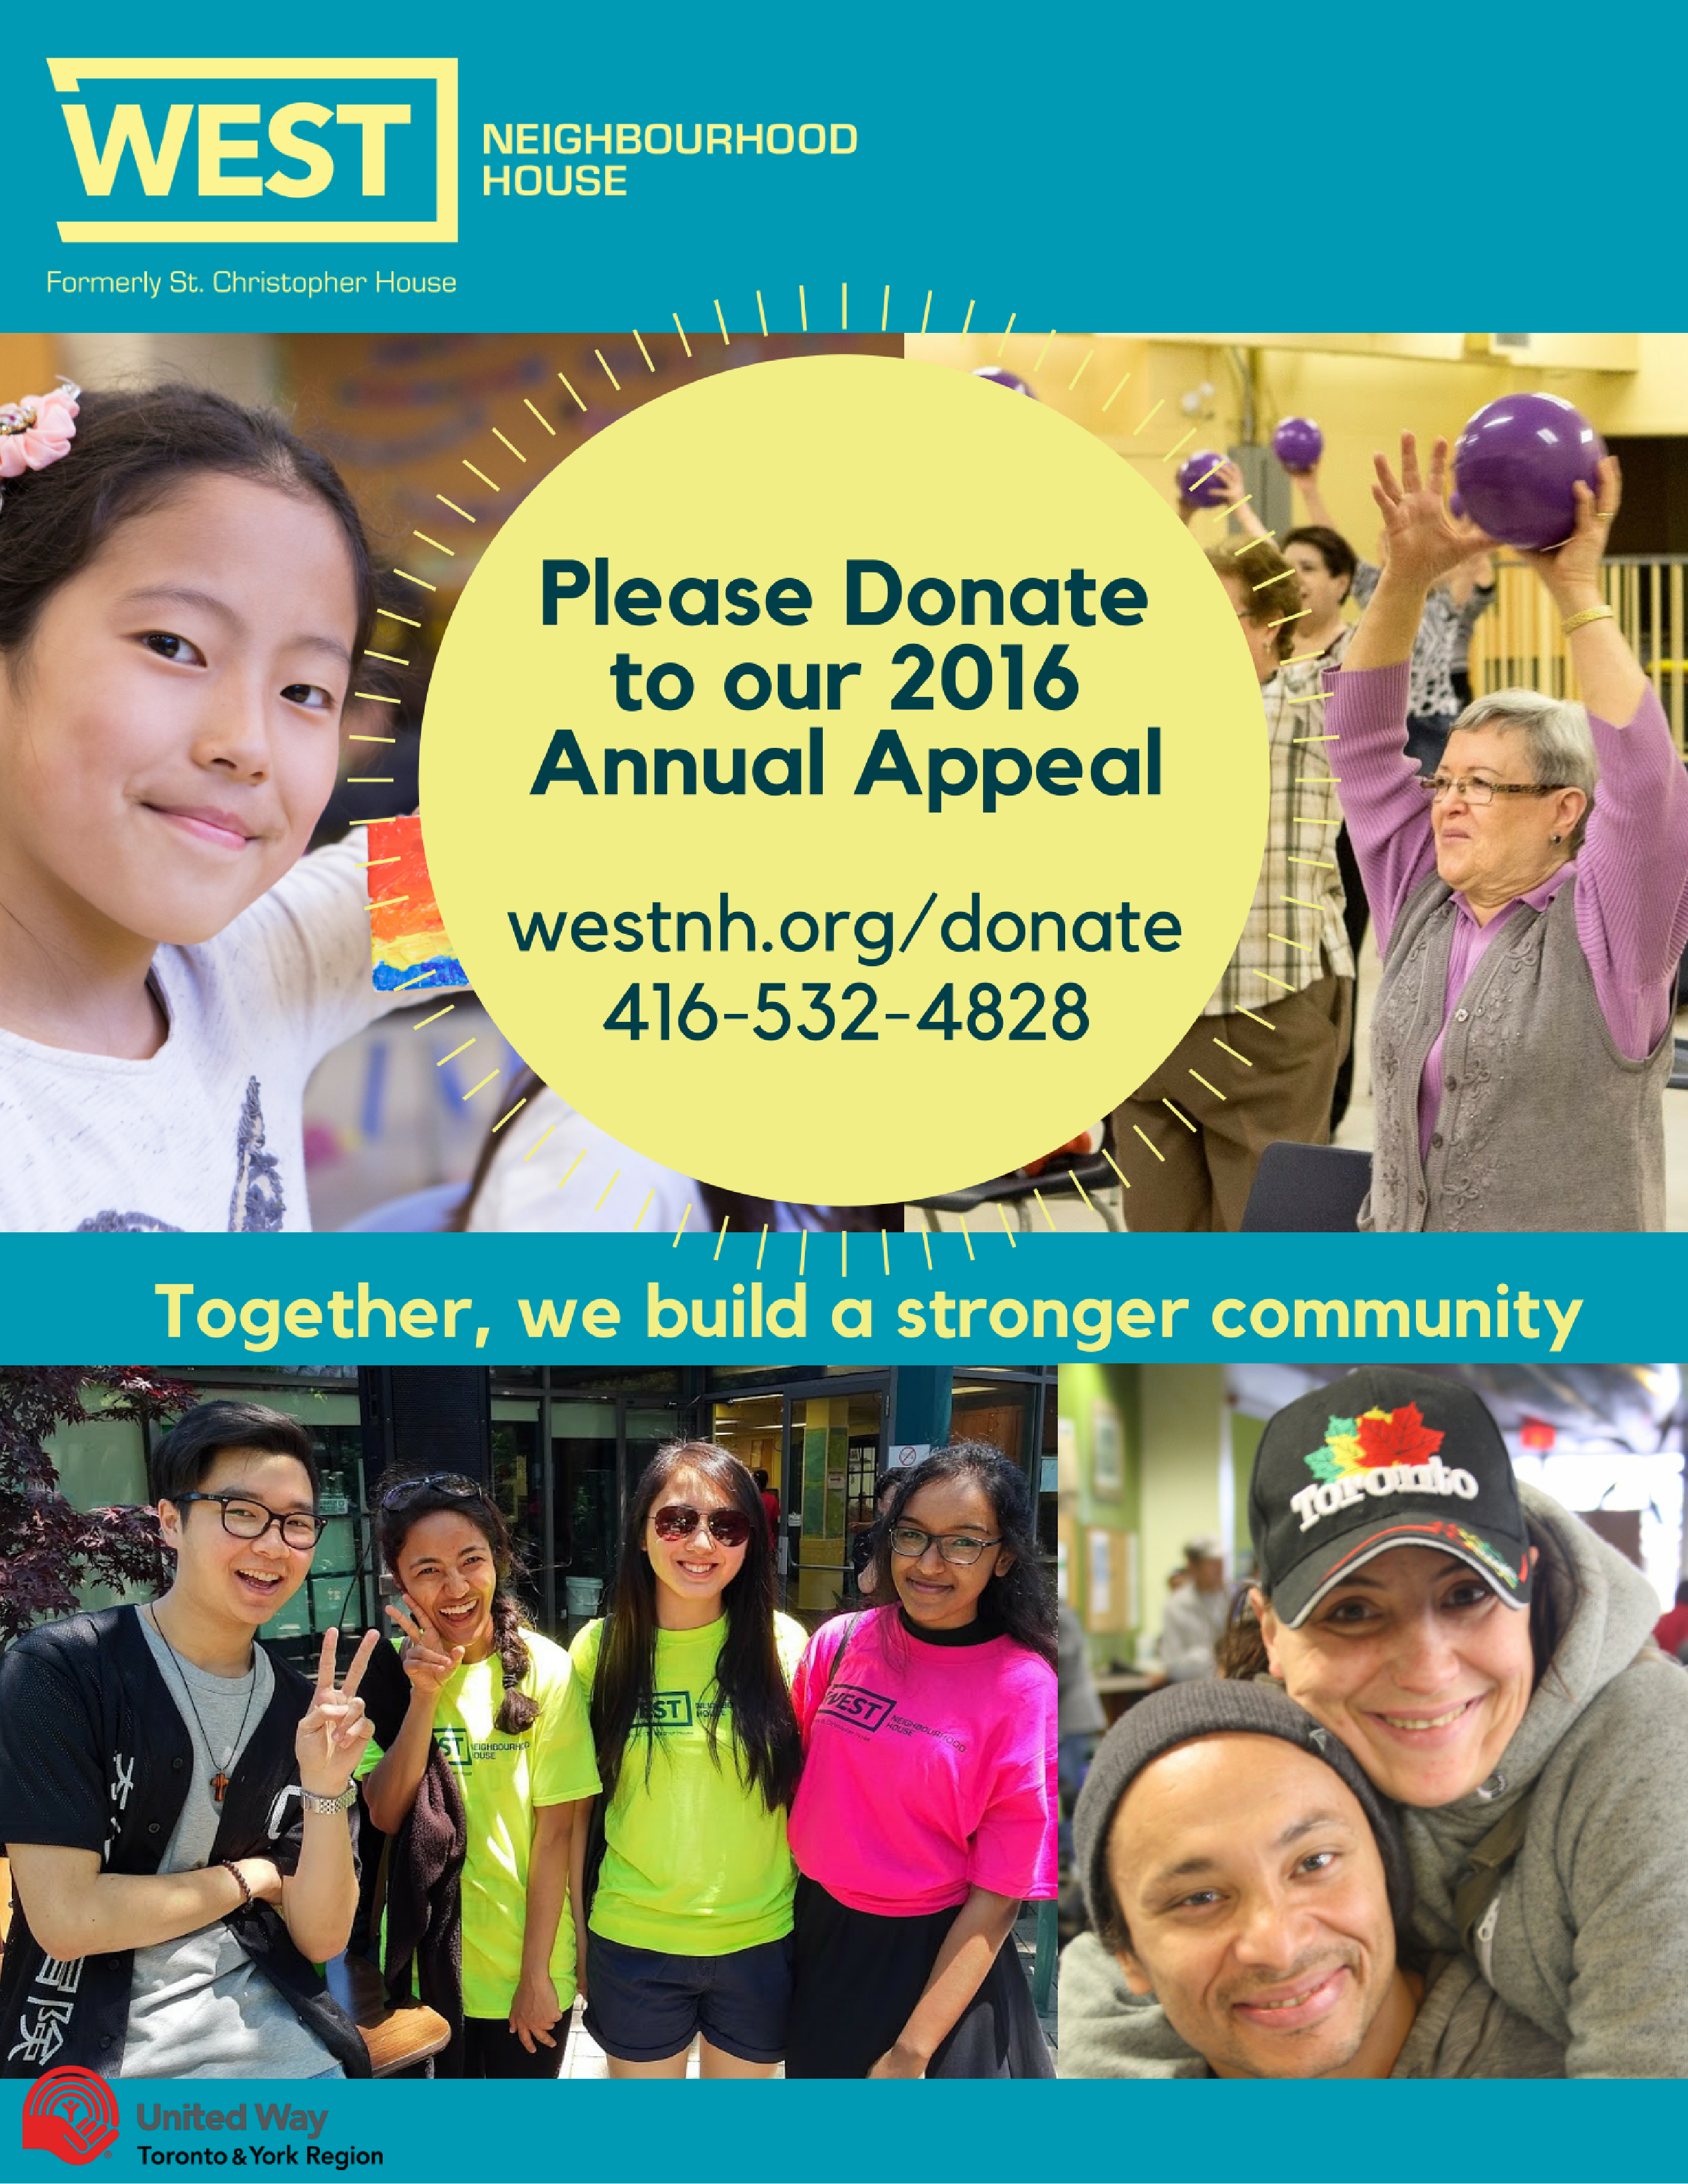 Please Give to our 2016 Annual Appeal